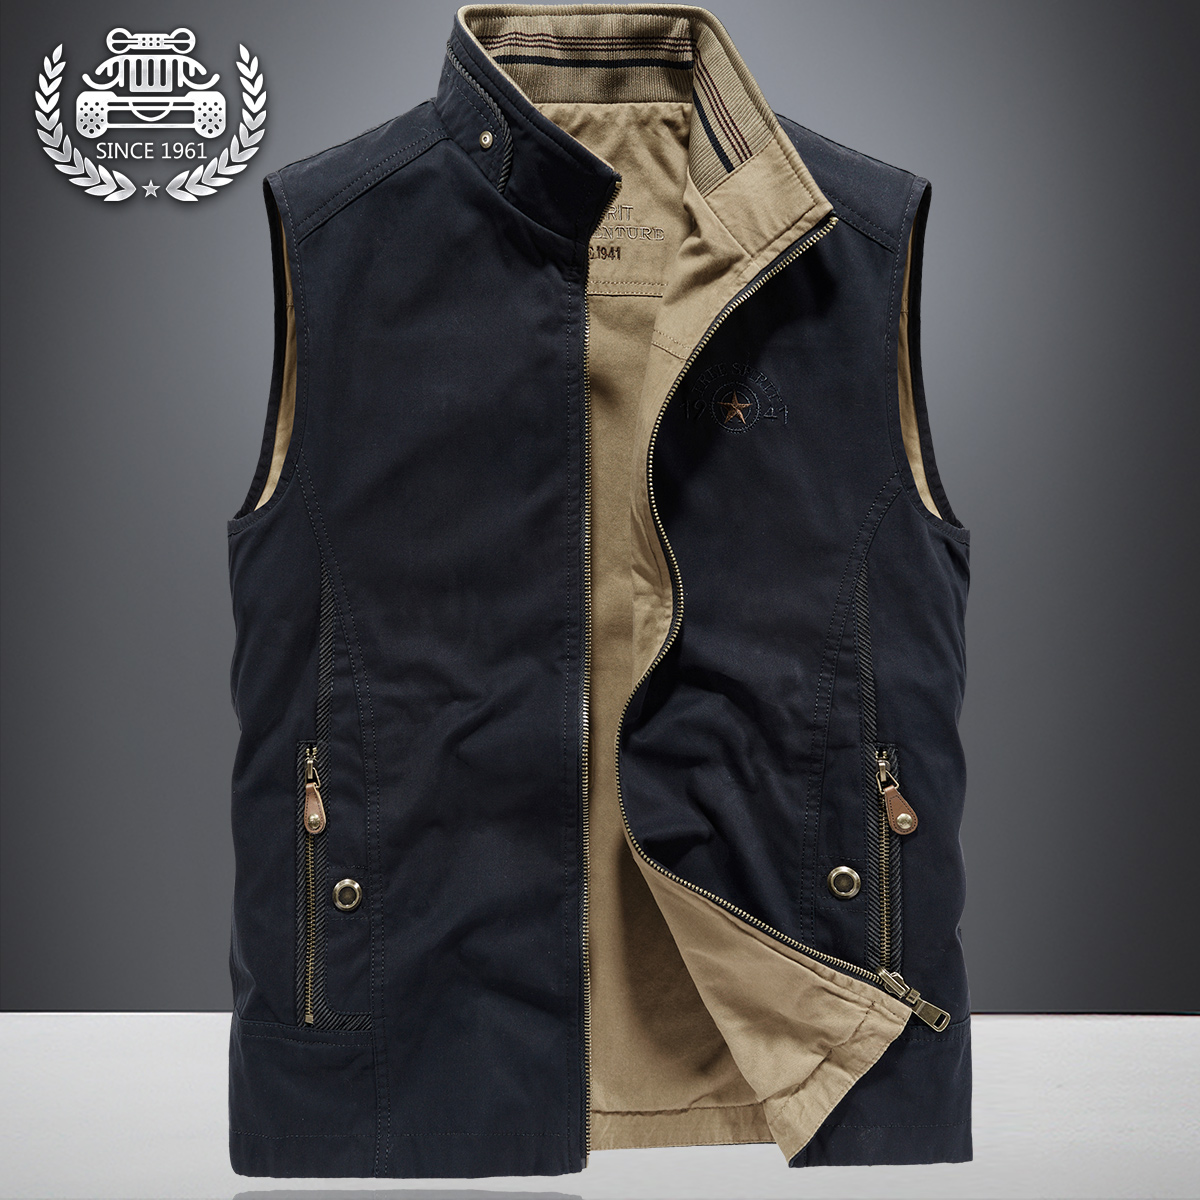 Spring double faced vest men's outdoor thin sleeveless vest denim jacket spring and autumn large loose tooling coat